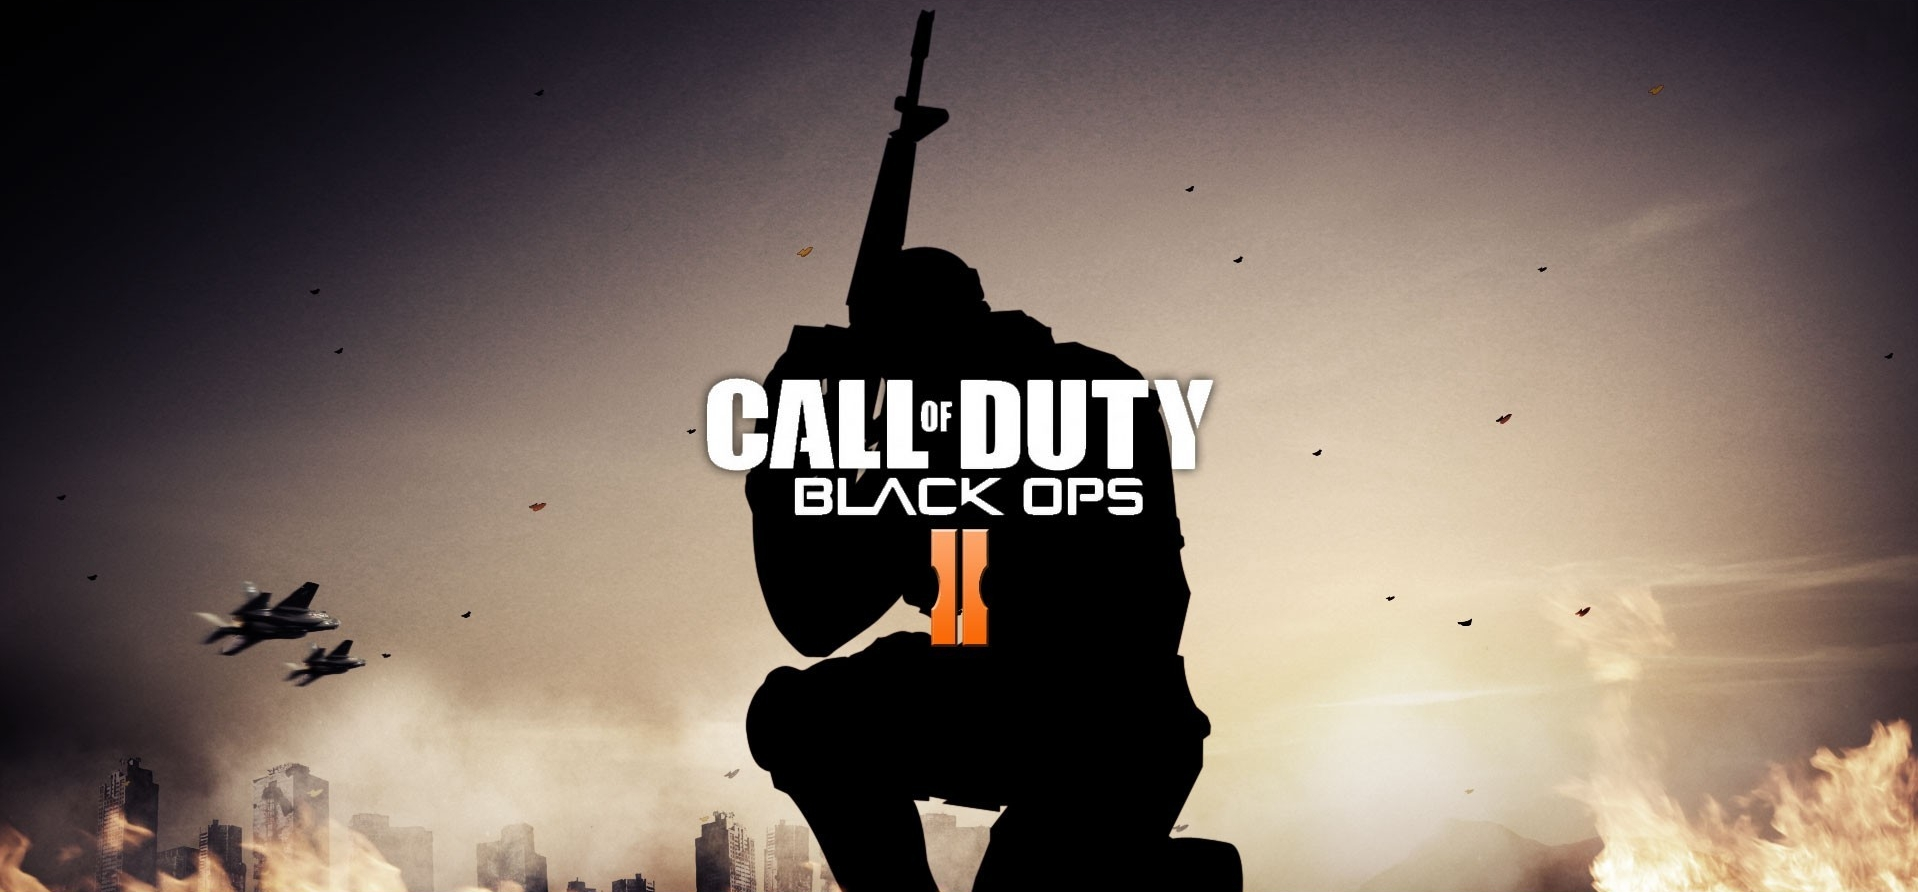 Call of Duty Black Ops 2 wallpaper 19